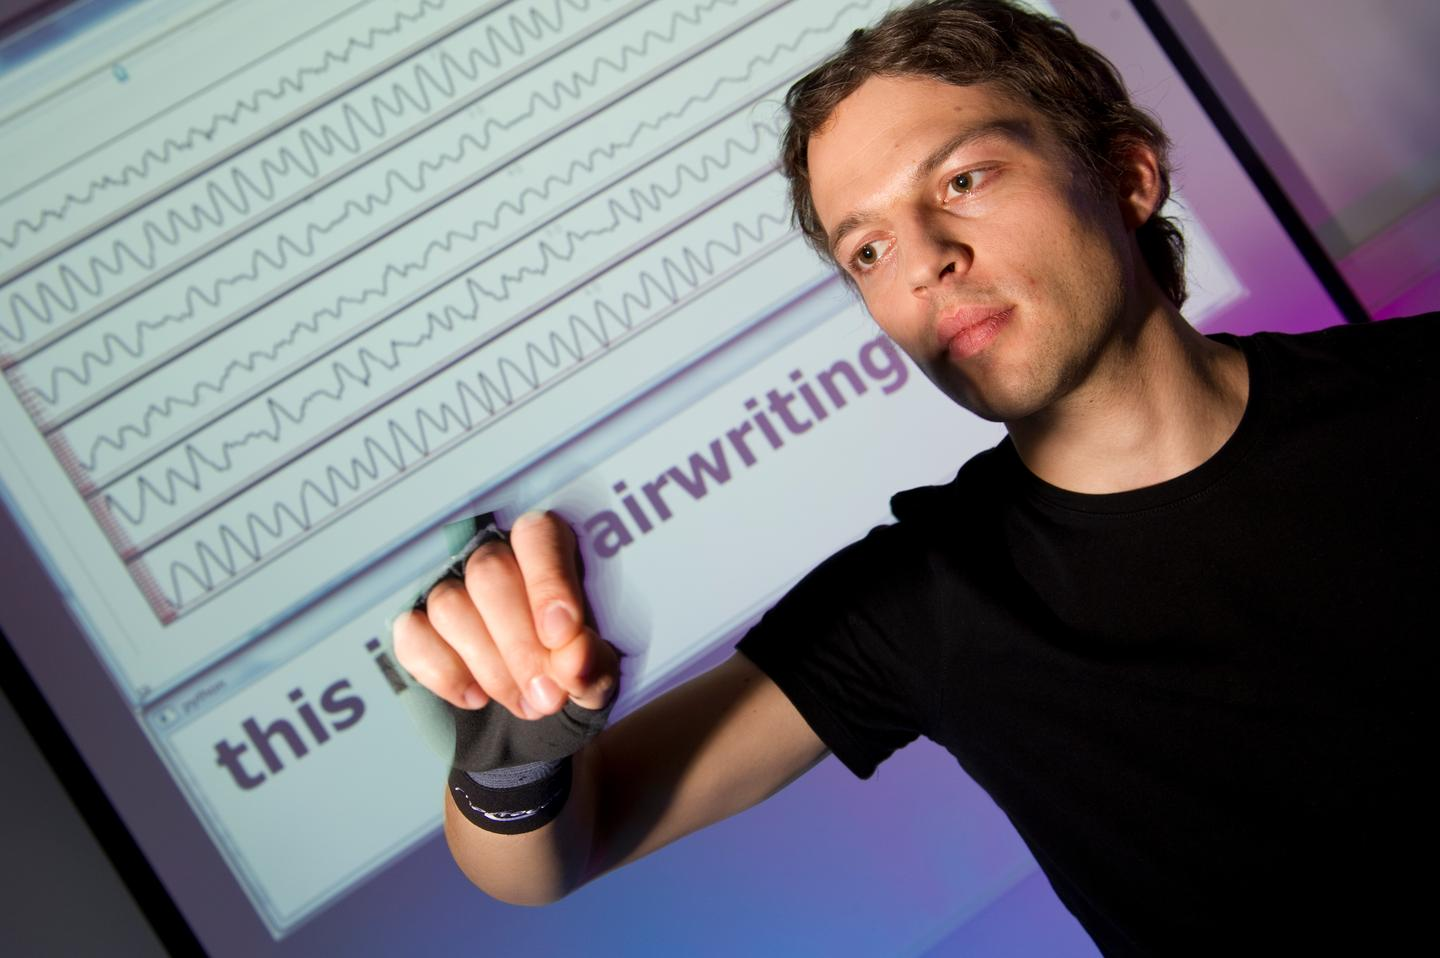 In the airwriting system, a sensor-equipped glove is used to identify letters drawn in the air by the wearer, which are then converted into digital text